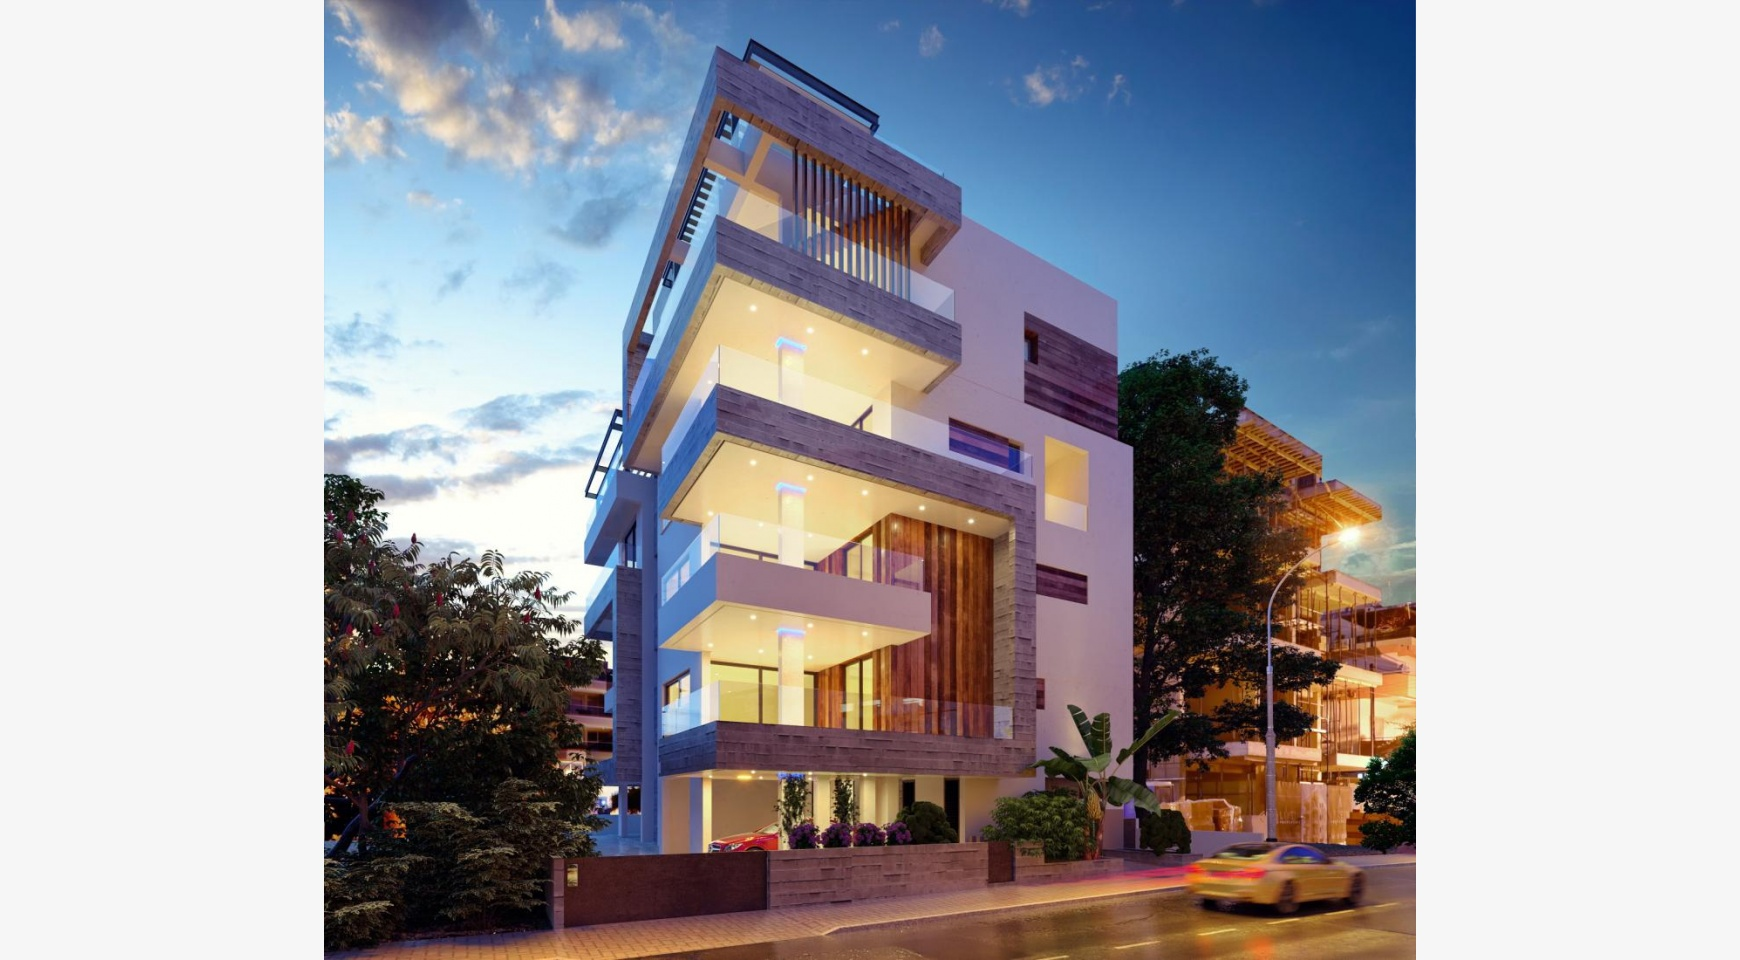 New 2 Bedroom Apartment in a Modern Building near the Beach - 1